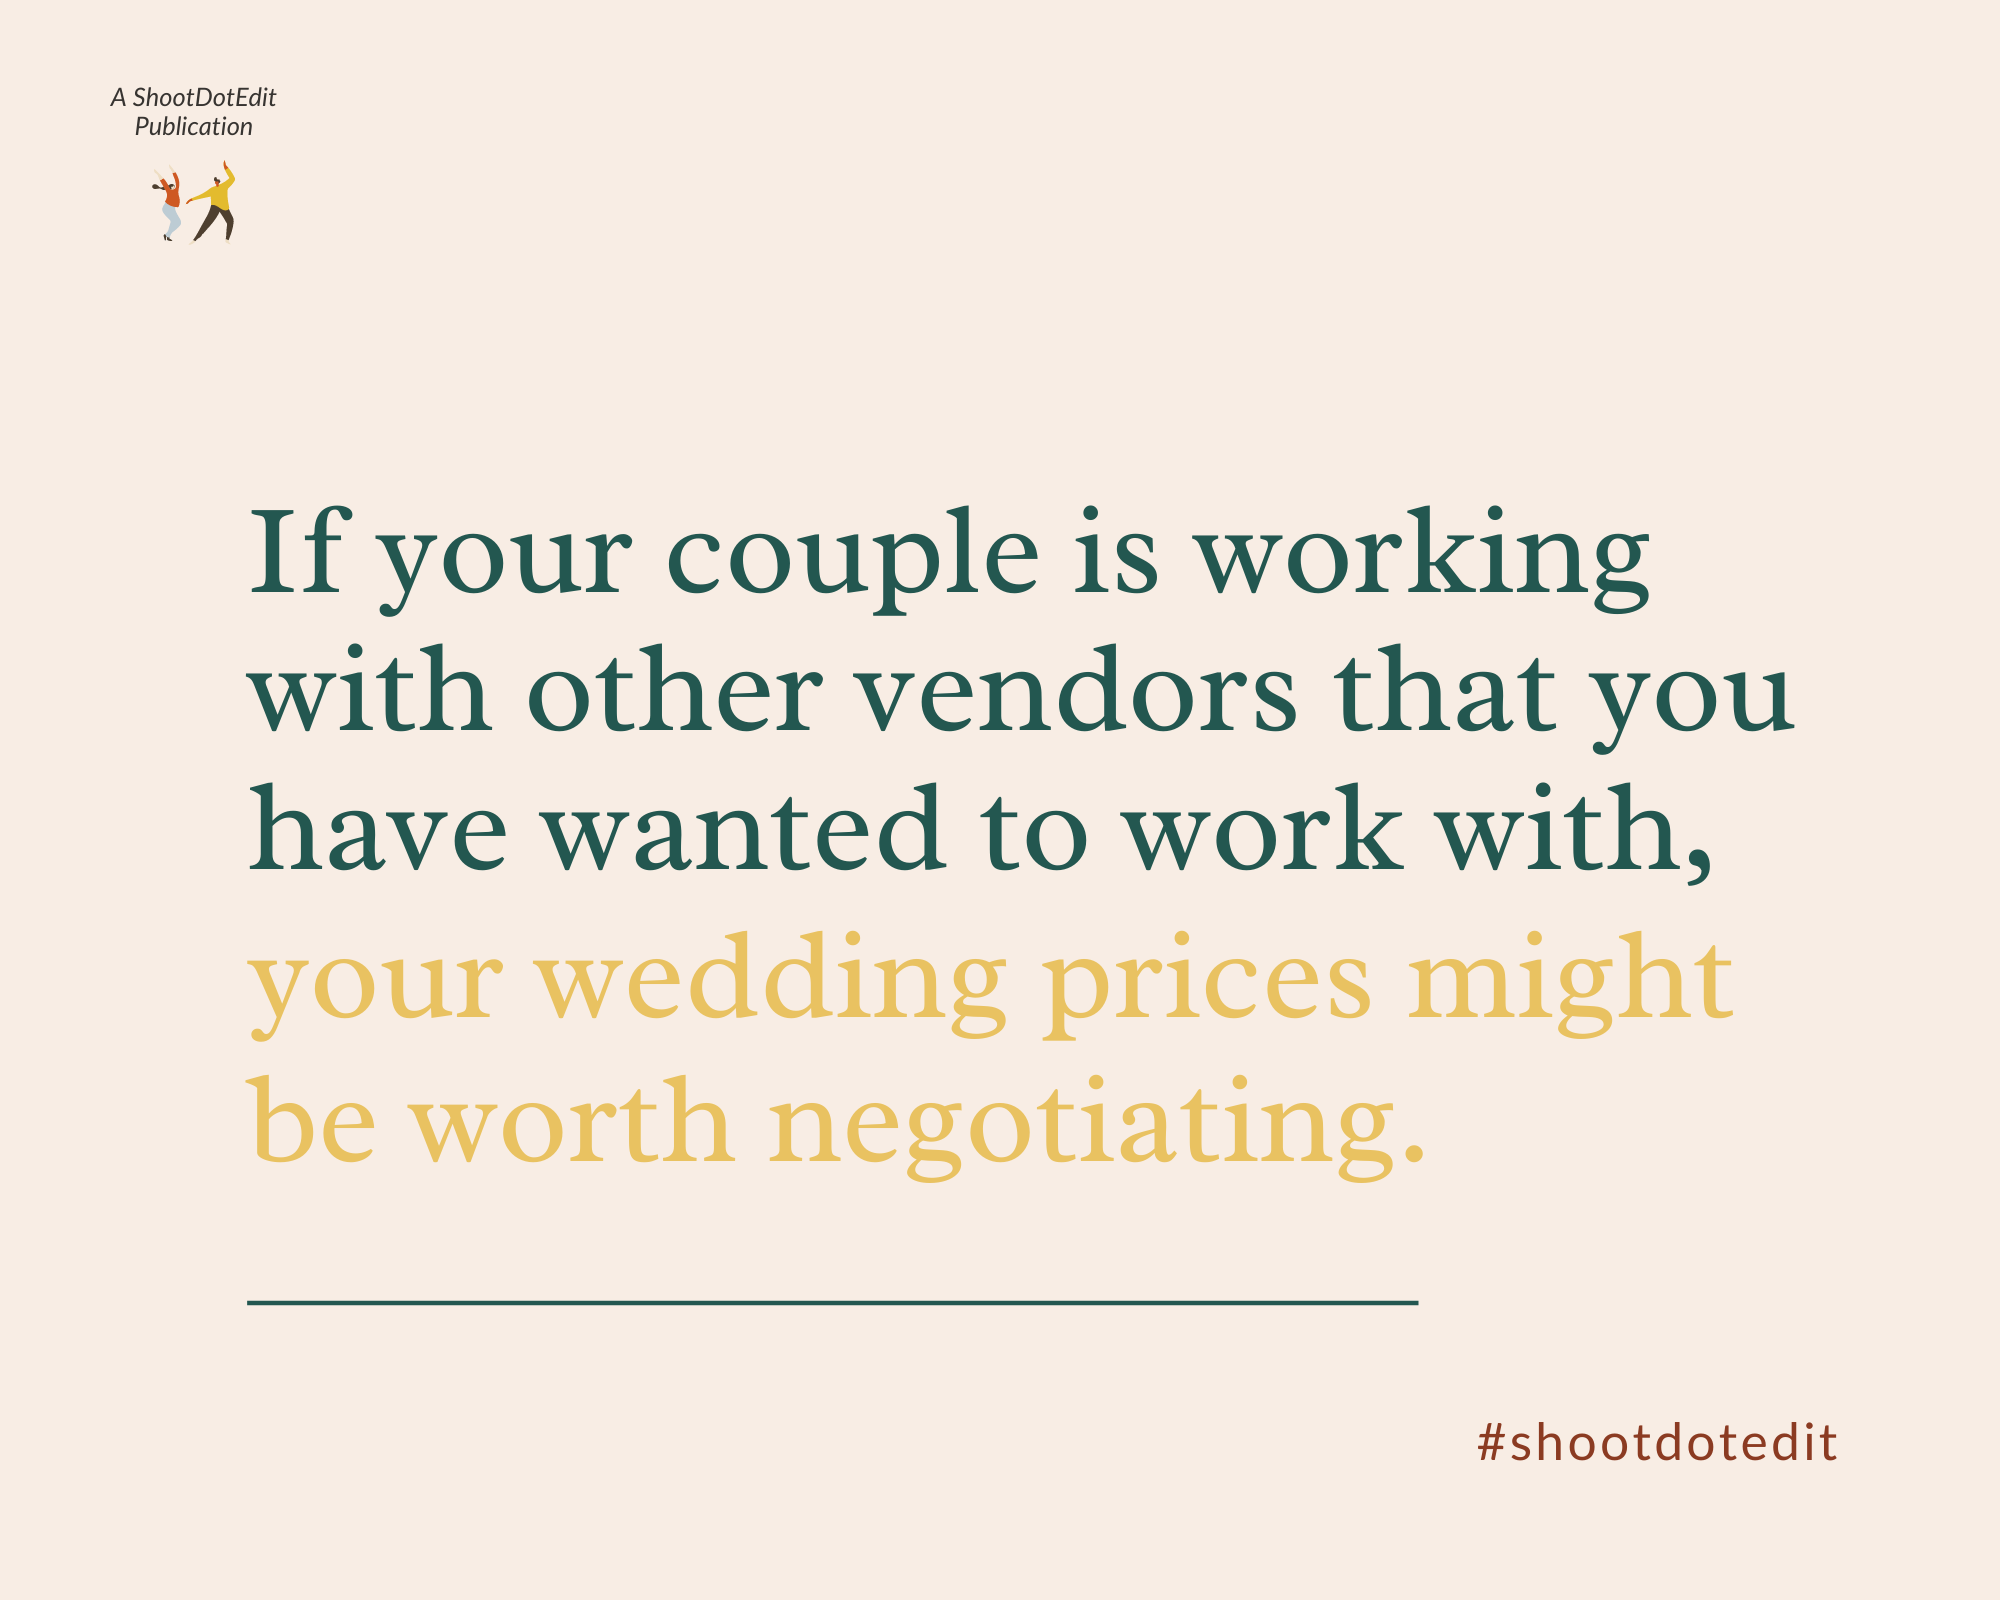 Infographic stating if your couple is working with other vendors that you have wanted to work with, your wedding prices might be worth negotiating